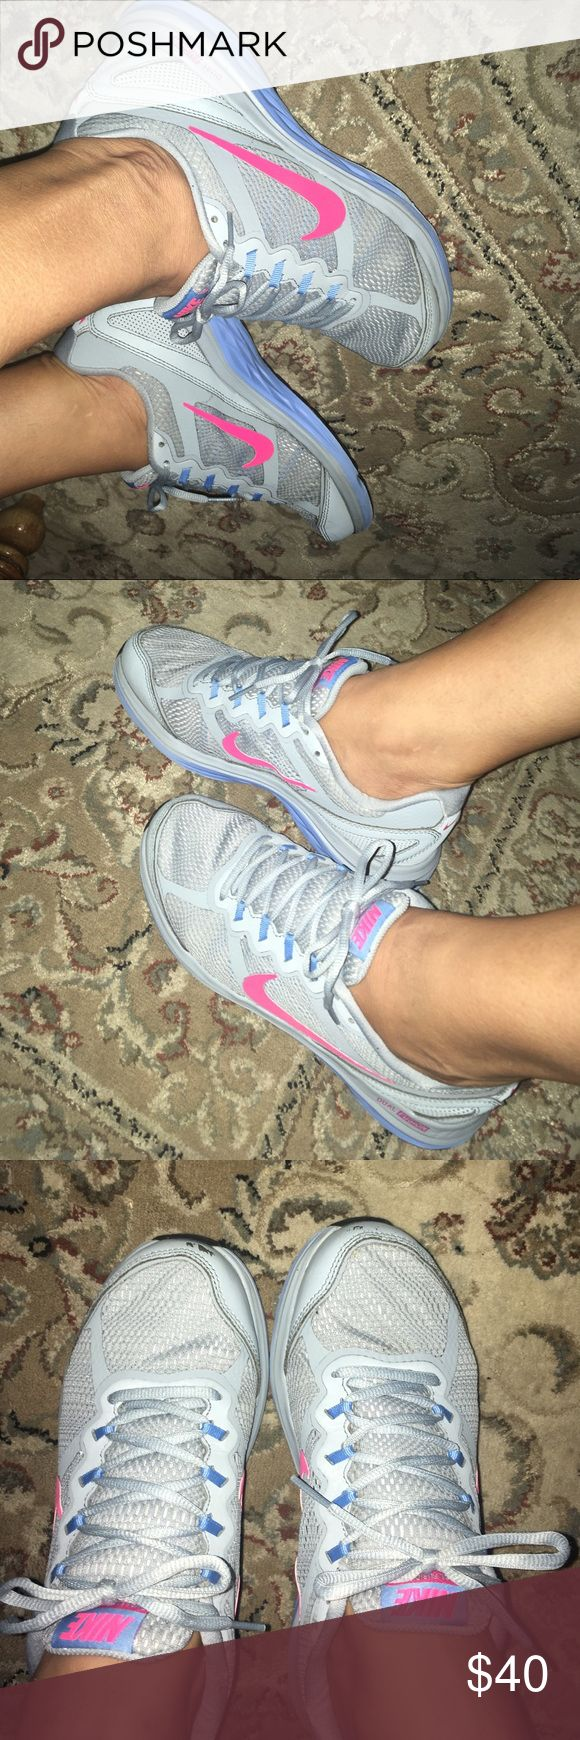 Nike dual fusion run 3 nice shoes Used but very clean nice comfortable shoes Nike Shoes Athletic Shoes